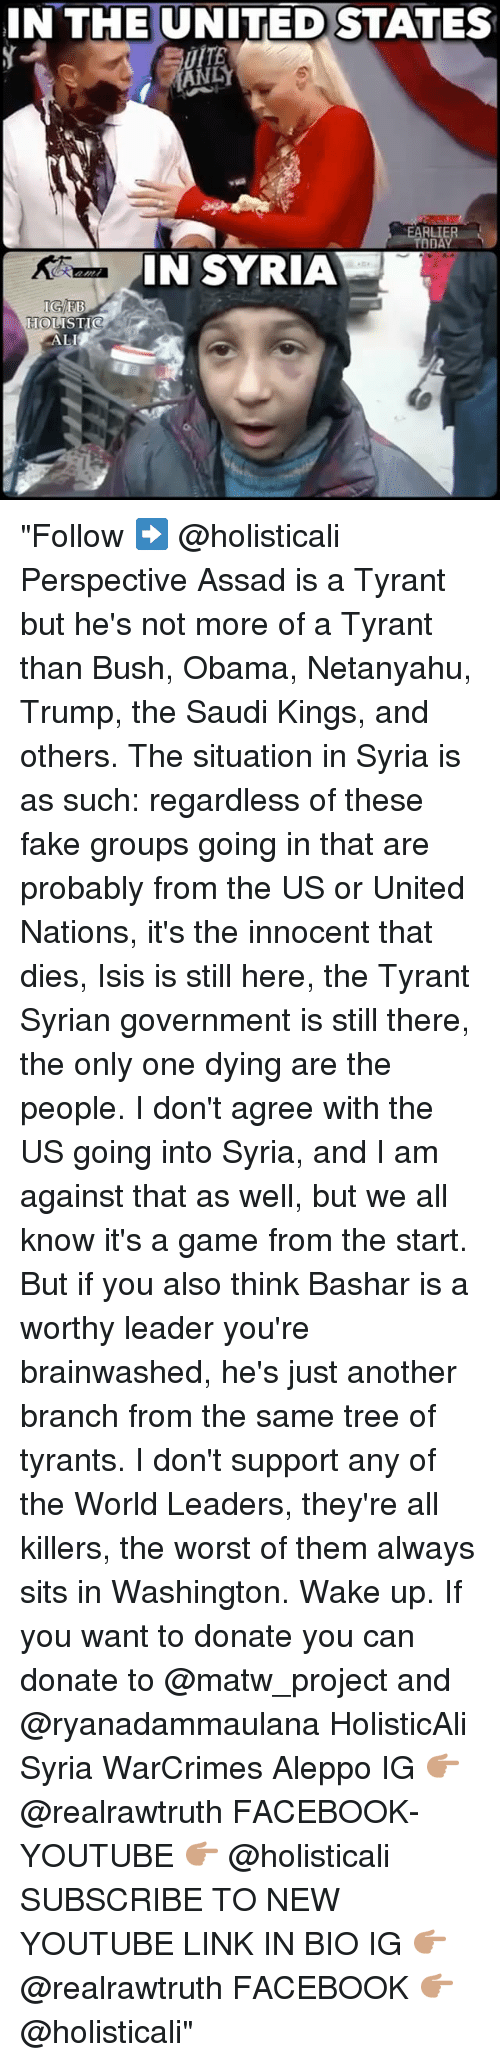 """assad: IN THE UNITED STATES  ANDY  EARLIE  TAD  IN SYRIA  EB  HOLISTIC  ALI """"Follow ➡️ @holisticali Perspective Assad is a Tyrant but he's not more of a Tyrant than Bush, Obama, Netanyahu, Trump, the Saudi Kings, and others. The situation in Syria is as such: regardless of these fake groups going in that are probably from the US or United Nations, it's the innocent that dies, Isis is still here, the Tyrant Syrian government is still there, the only one dying are the people. I don't agree with the US going into Syria, and I am against that as well, but we all know it's a game from the start. But if you also think Bashar is a worthy leader you're brainwashed, he's just another branch from the same tree of tyrants. I don't support any of the World Leaders, they're all killers, the worst of them always sits in Washington. Wake up. If you want to donate you can donate to @matw_project and @ryanadammaulana HolisticAli Syria WarCrimes Aleppo IG 👉🏽 @realrawtruth FACEBOOK-YOUTUBE 👉🏽 @holisticali SUBSCRIBE TO NEW YOUTUBE LINK IN BIO IG 👉🏽 @realrawtruth FACEBOOK 👉🏽 @holisticali"""""""